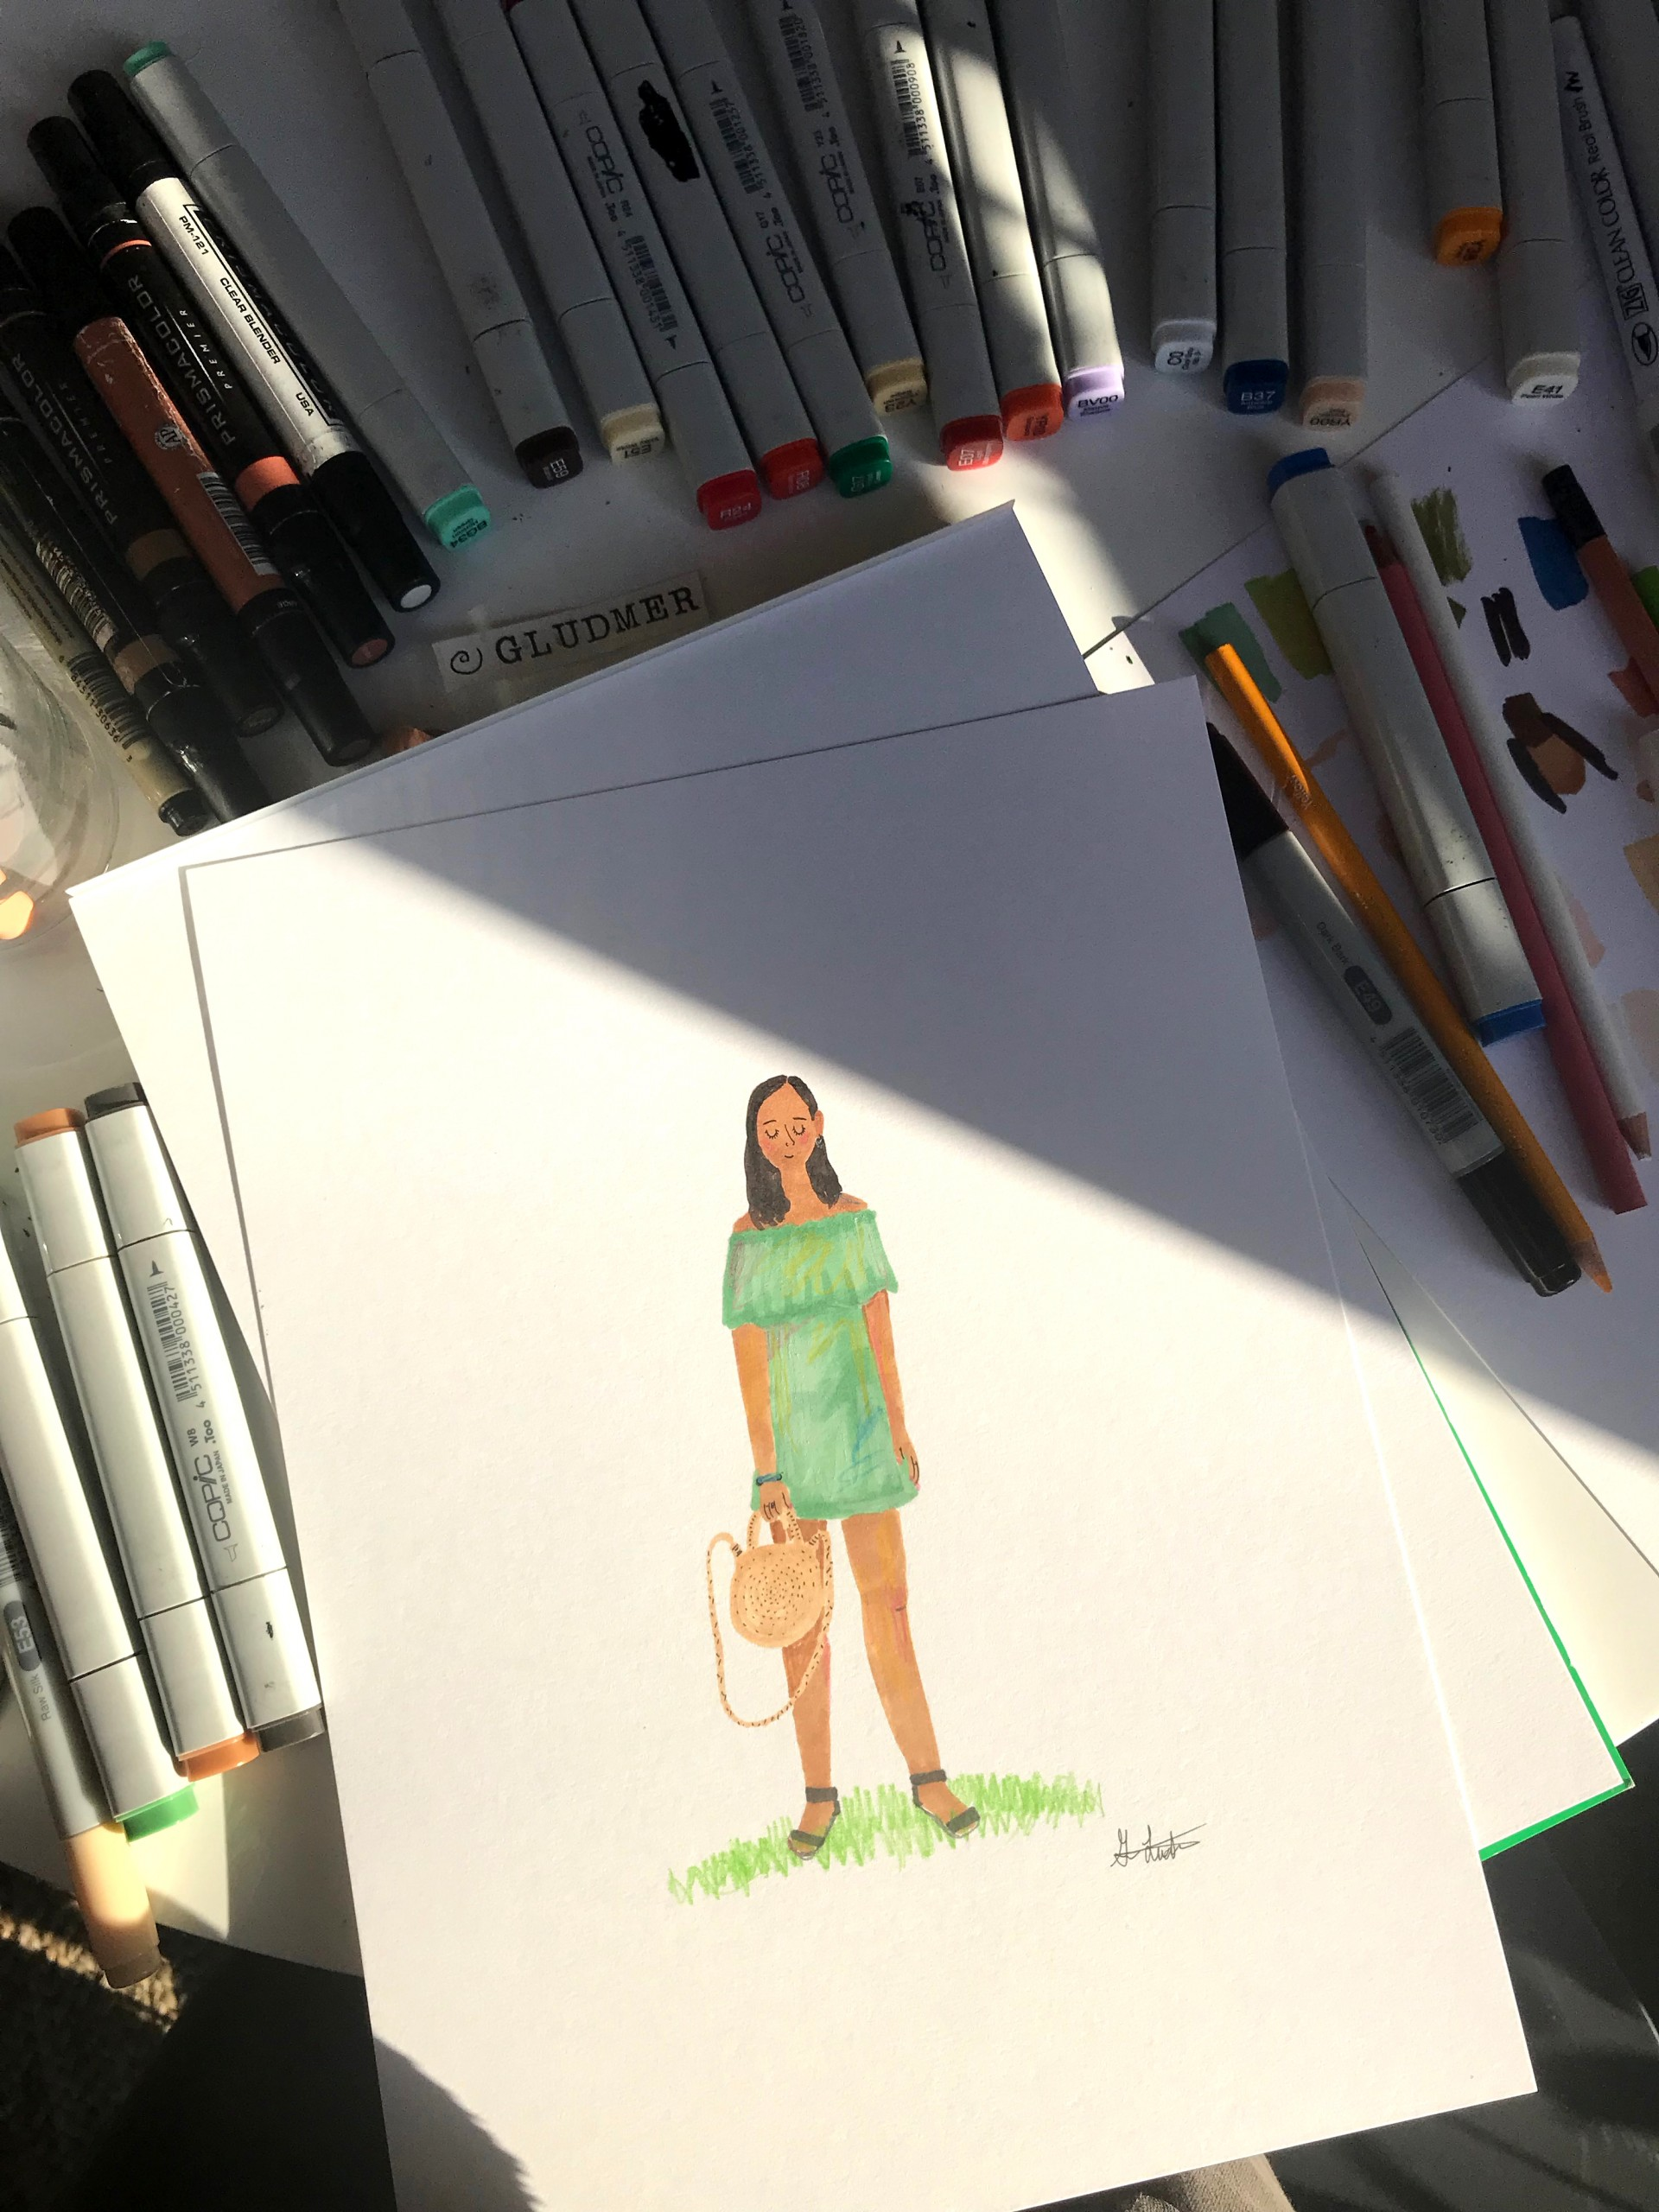 Markers surrounding drawing of girl wearing strapless light green dress holding wicker bag.